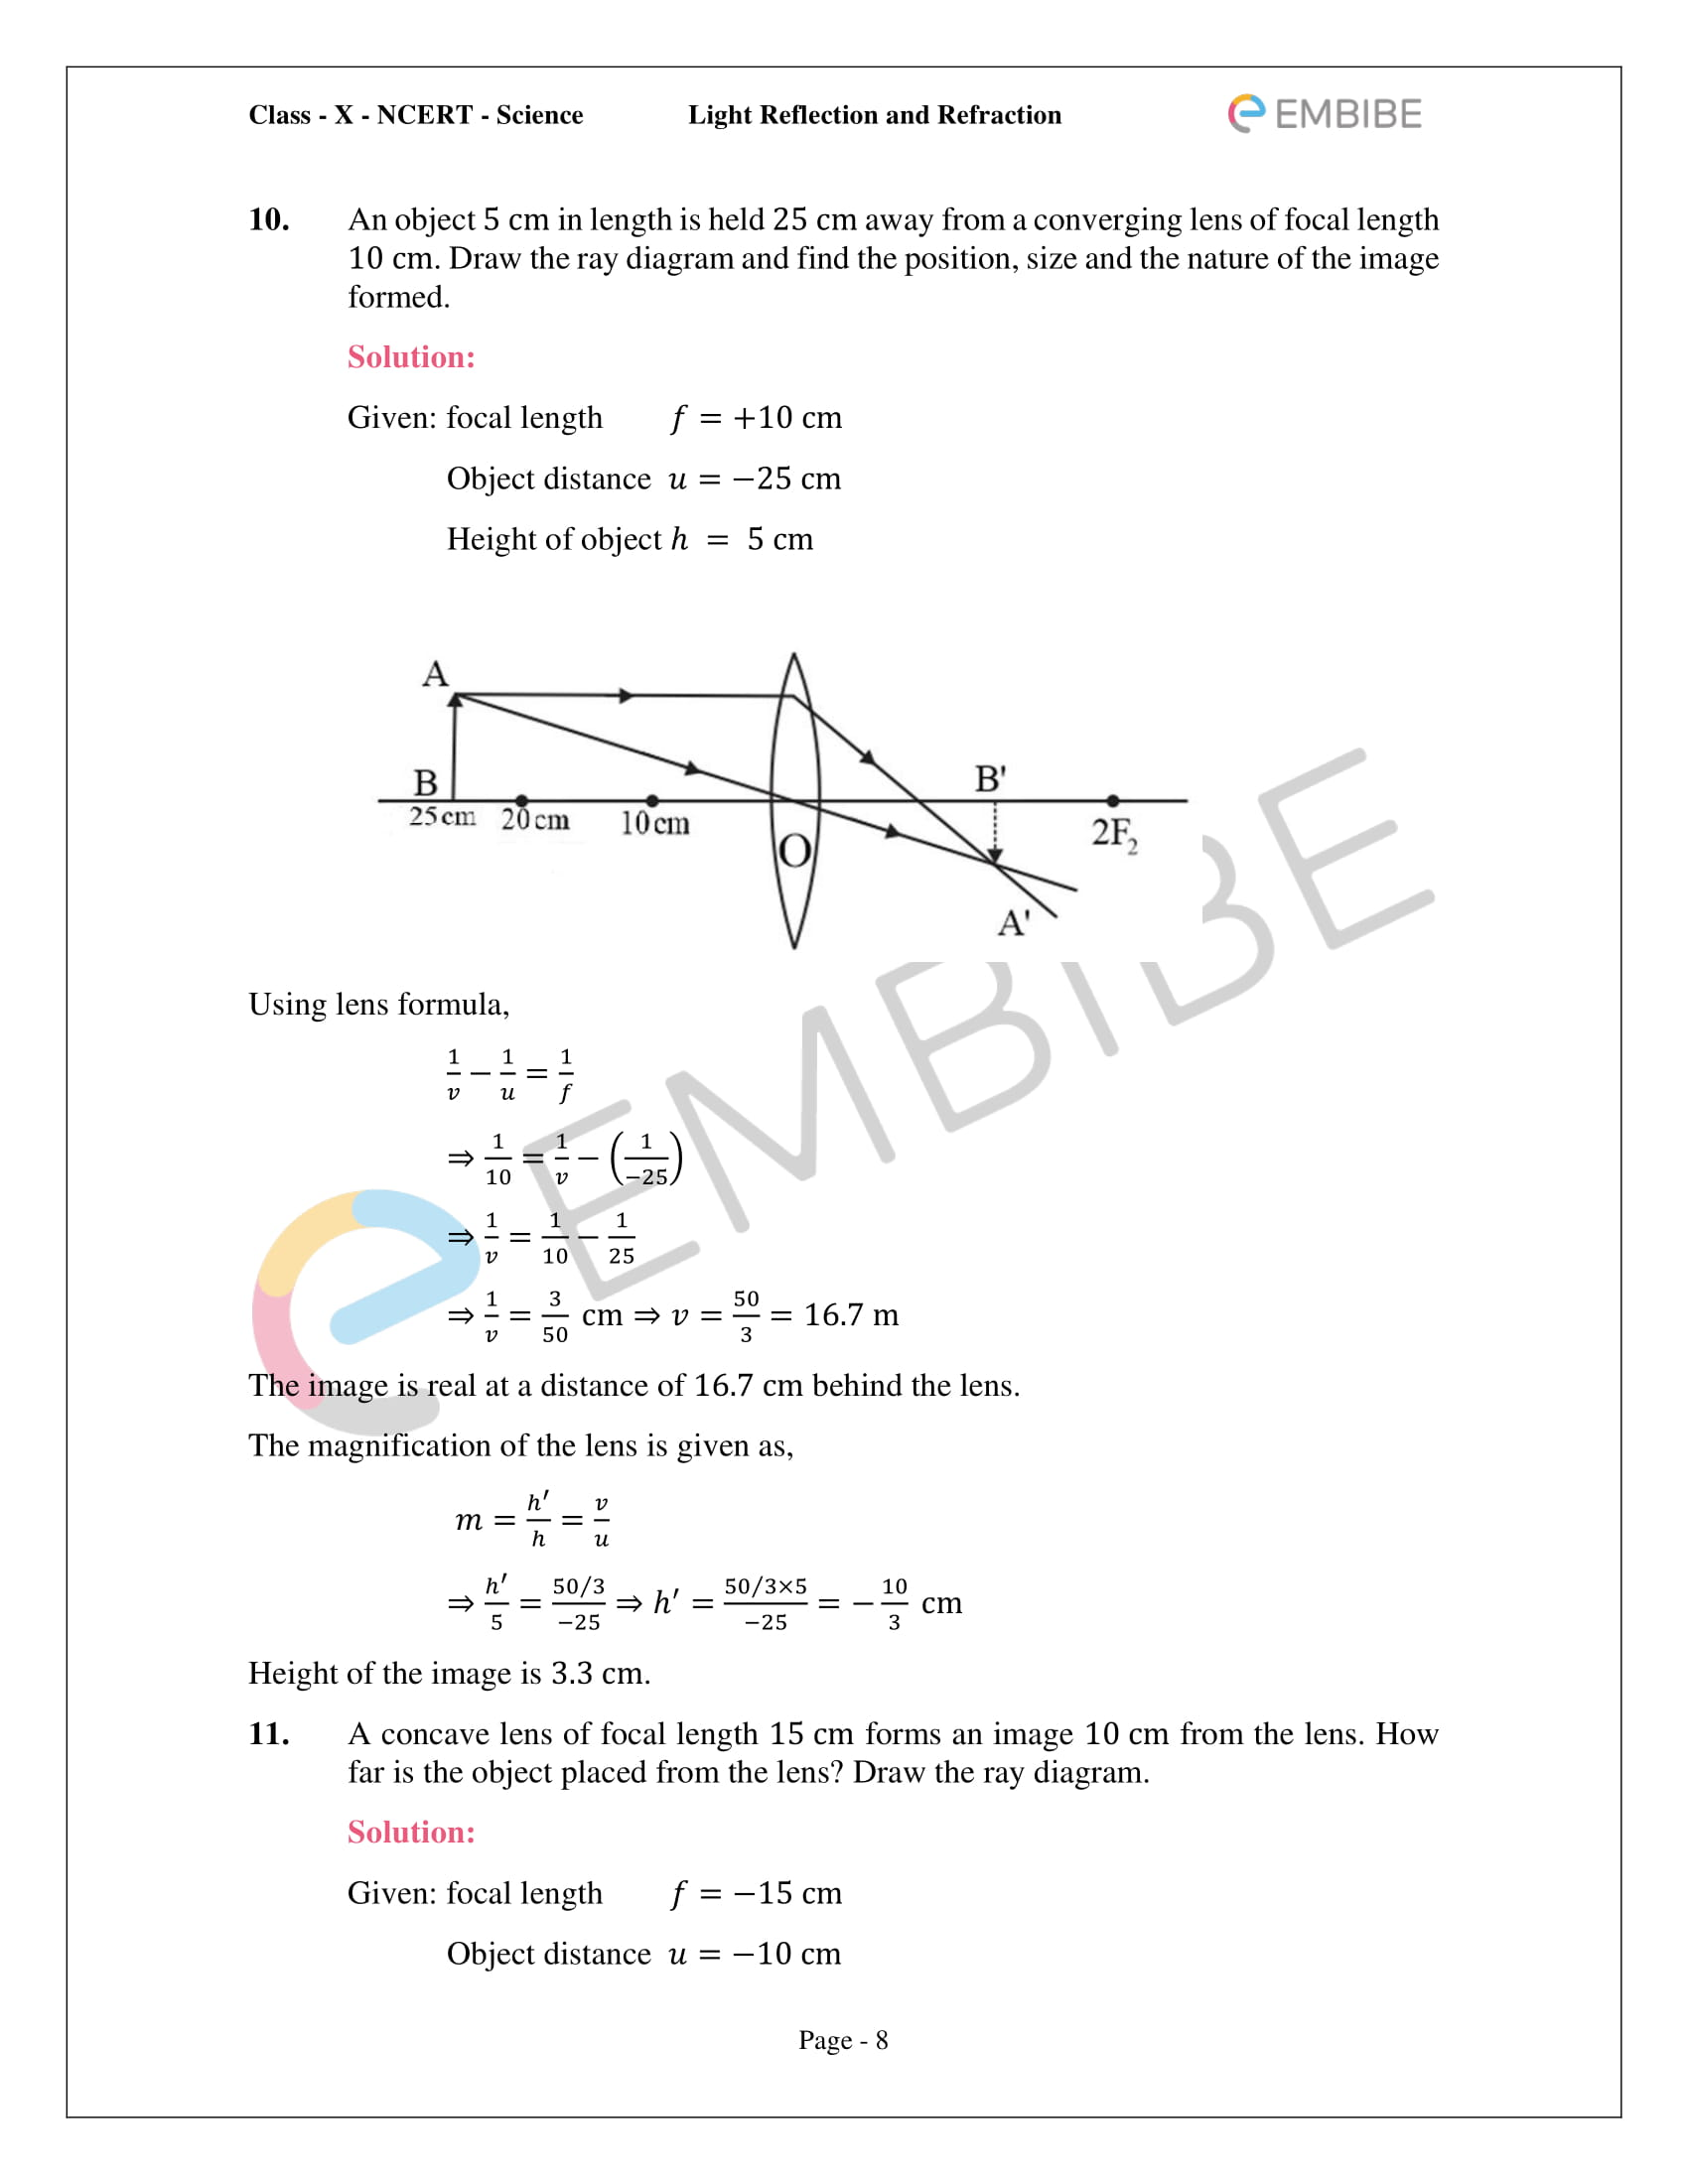 CBSE NCERT Solutions For Class 10 Science Chapter 10 - Light Reflection and Refraction - 8